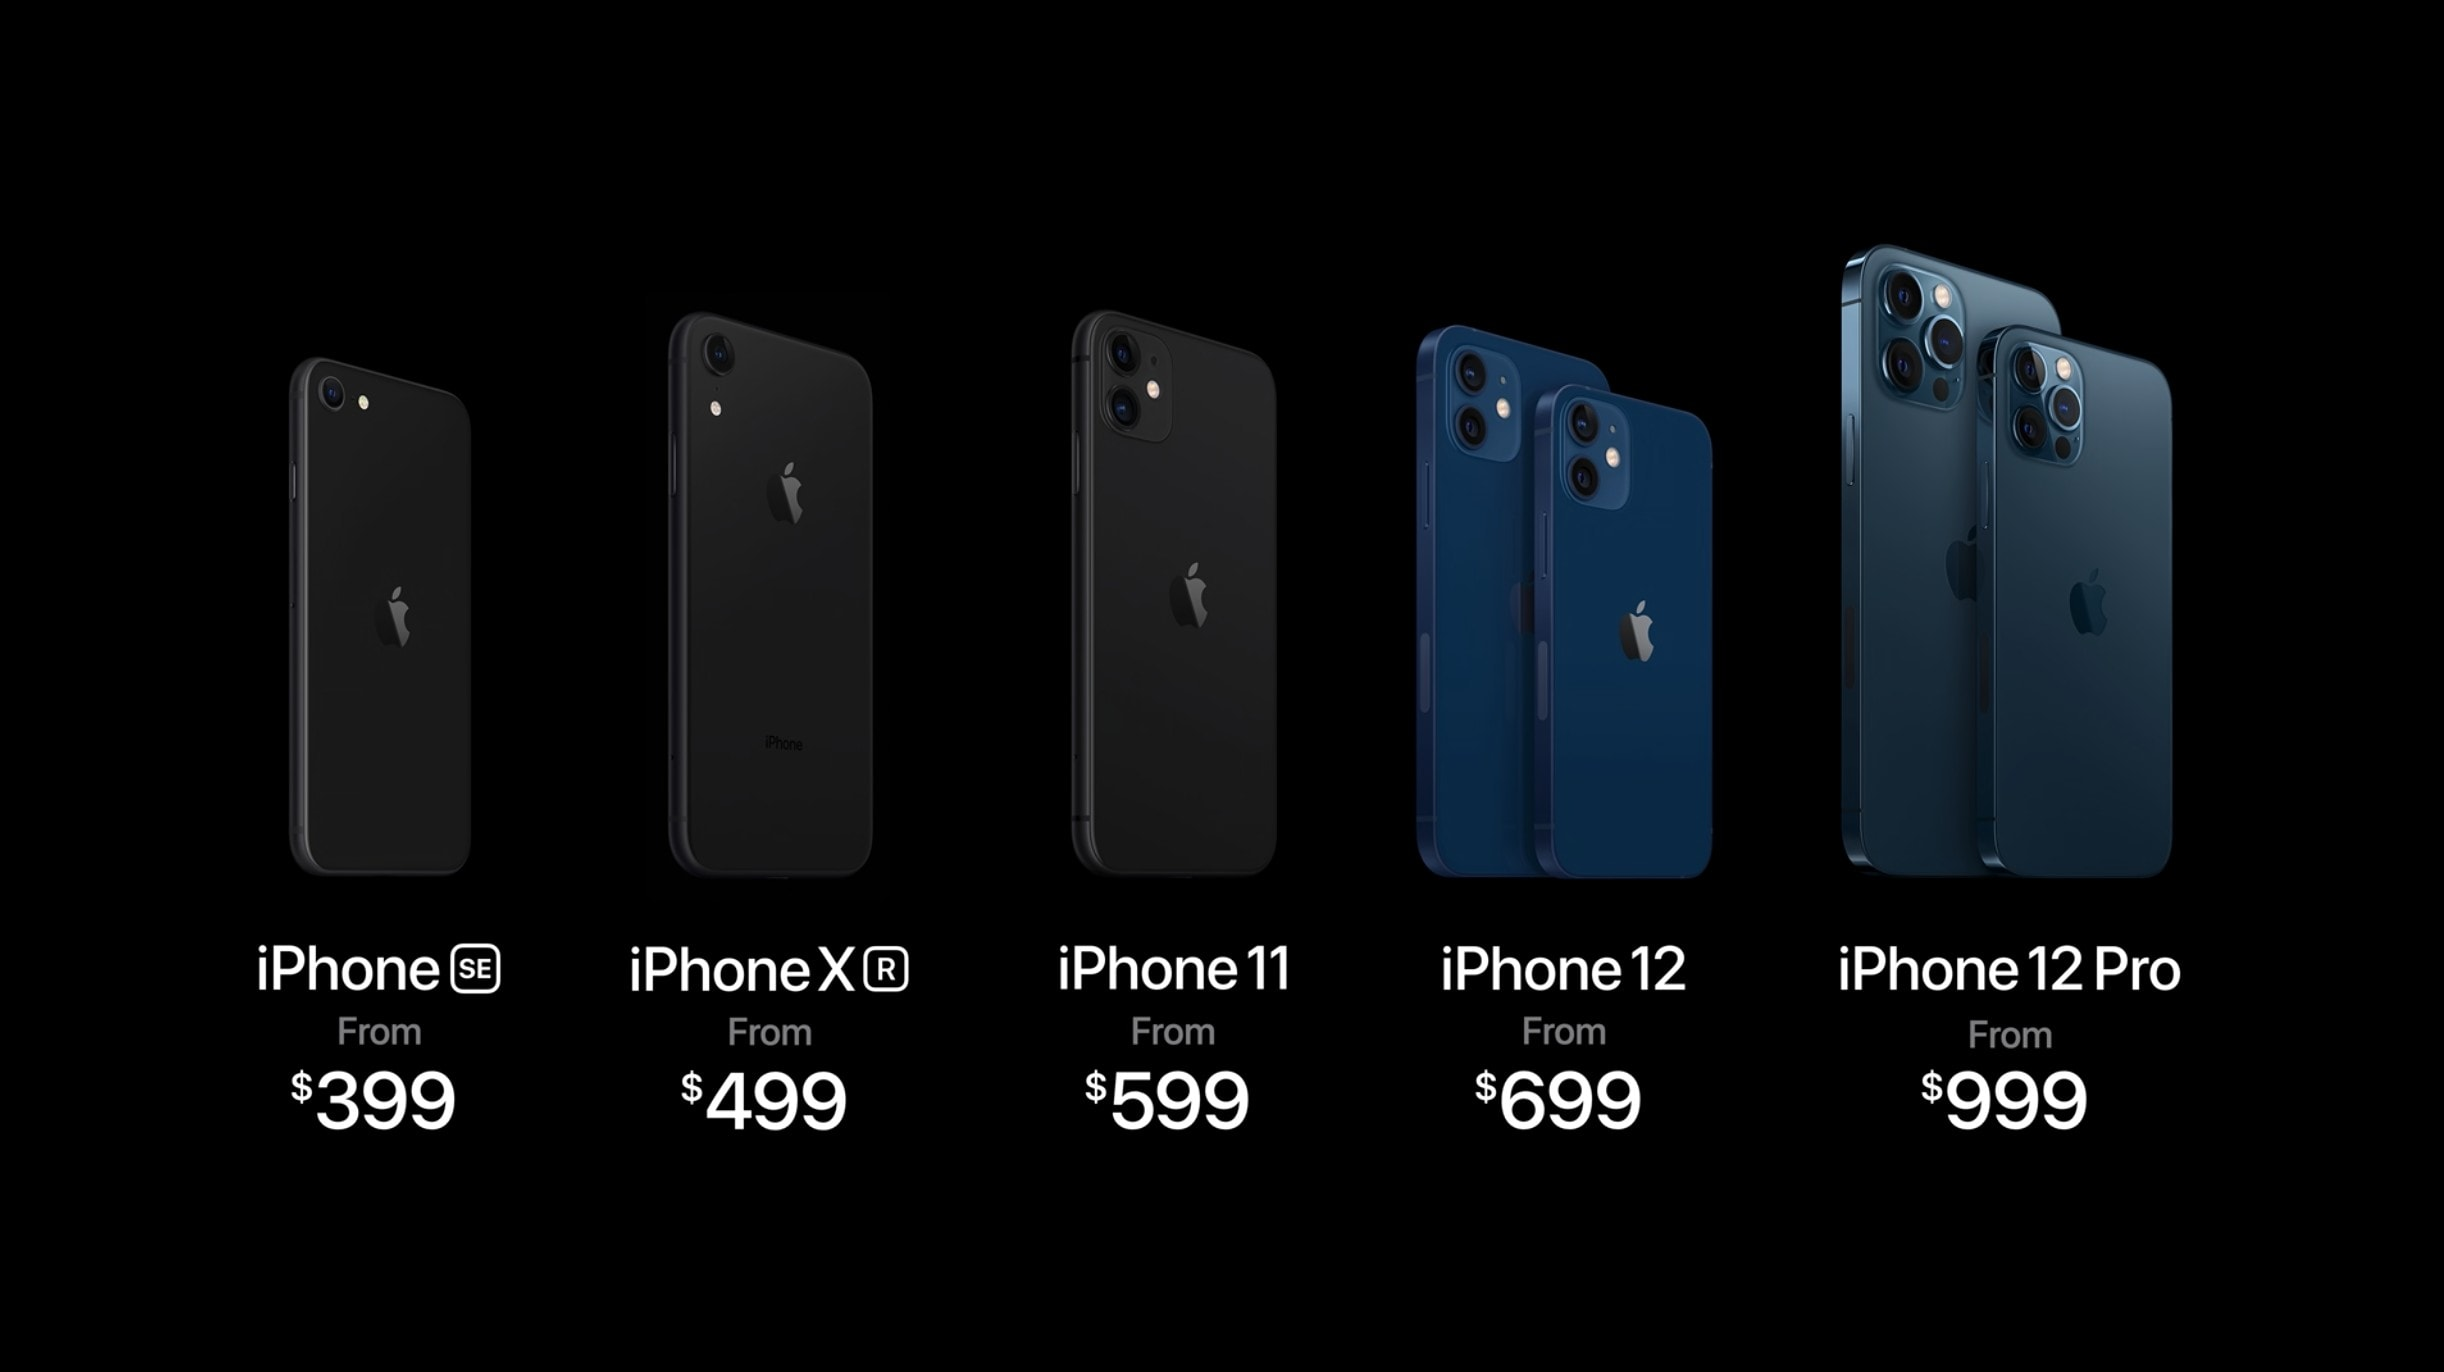 Apple finally sorted out naming for this year's iPhones